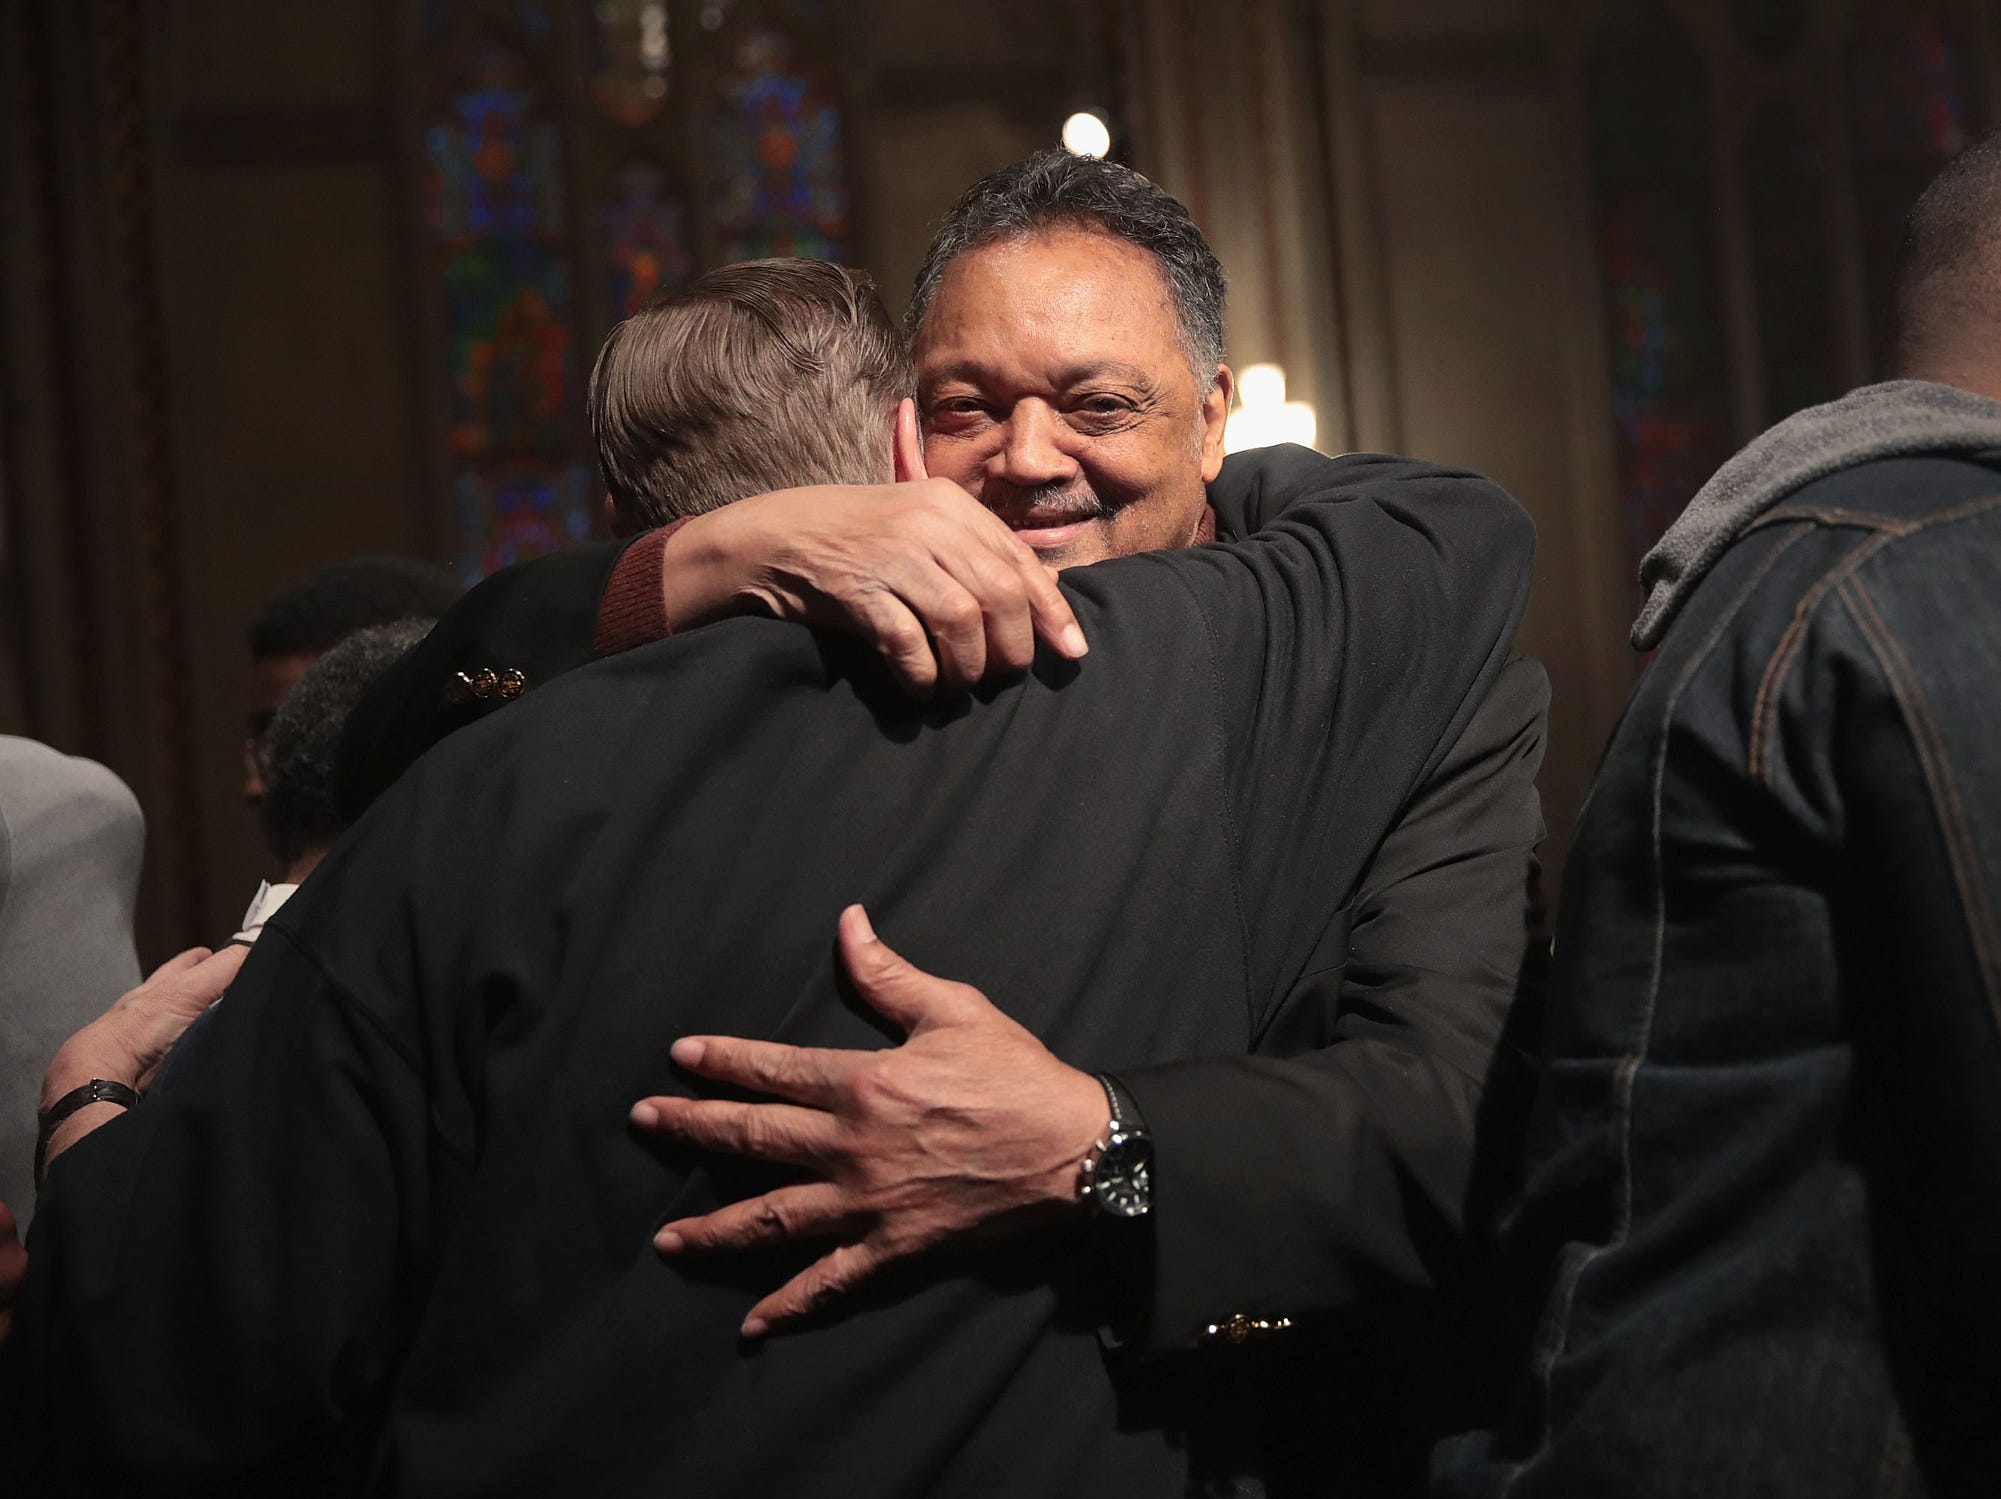 Rev. Jesse Jackson and Father Michel Pfleger embrace after voicing their support for Cook County State's Attorney Kim Foxx before the start of a protest organized by the Fraternal Order of Police calling for the removal of Foxx on April 1, 2019 in Chicago.